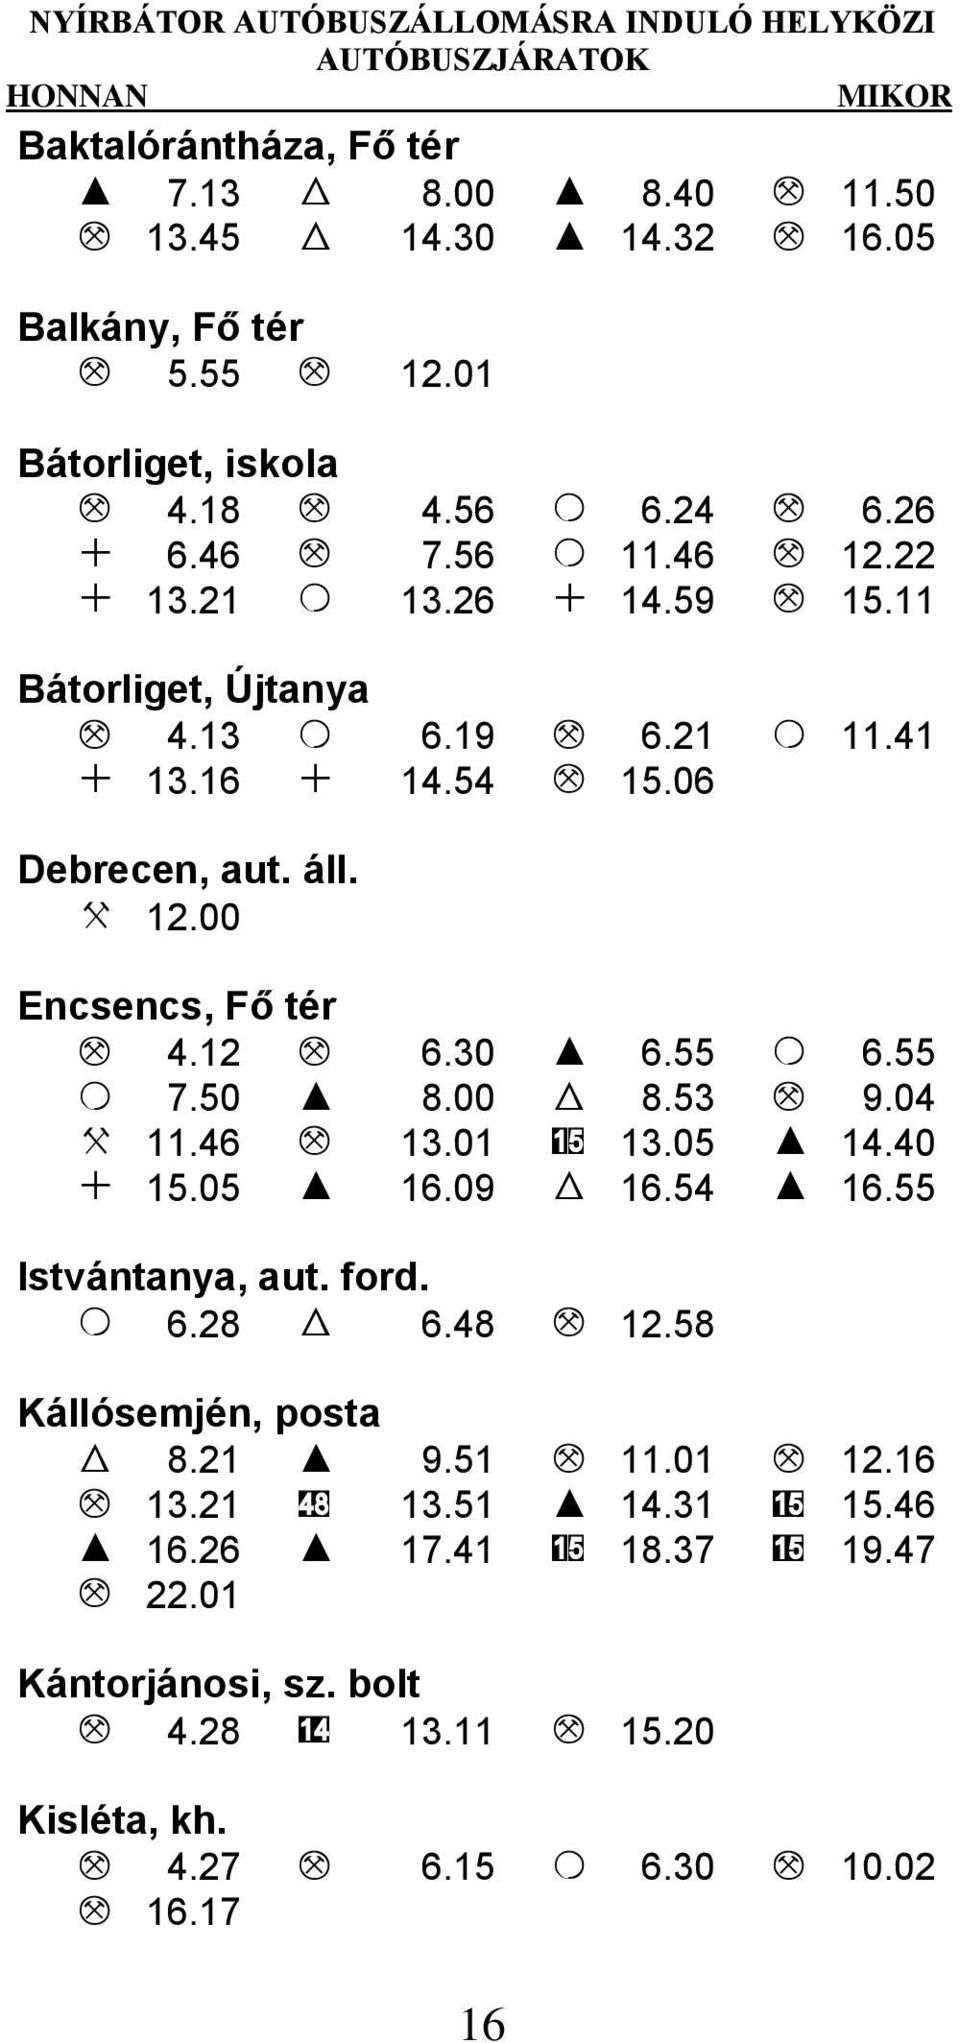 00 Encsencs, Fő tér M 4.12 M 6.30 I 6.55 O 6.55 O 7.50 I 8.00 W 8.53 M 9.04 X 11.46 M 13.01 15 13.05 I 14.40 + 15.05 I 16.09 W 16.54 I 16.55 Istvántanya, aut. ford. O 6.28 W 6.48 M 12.